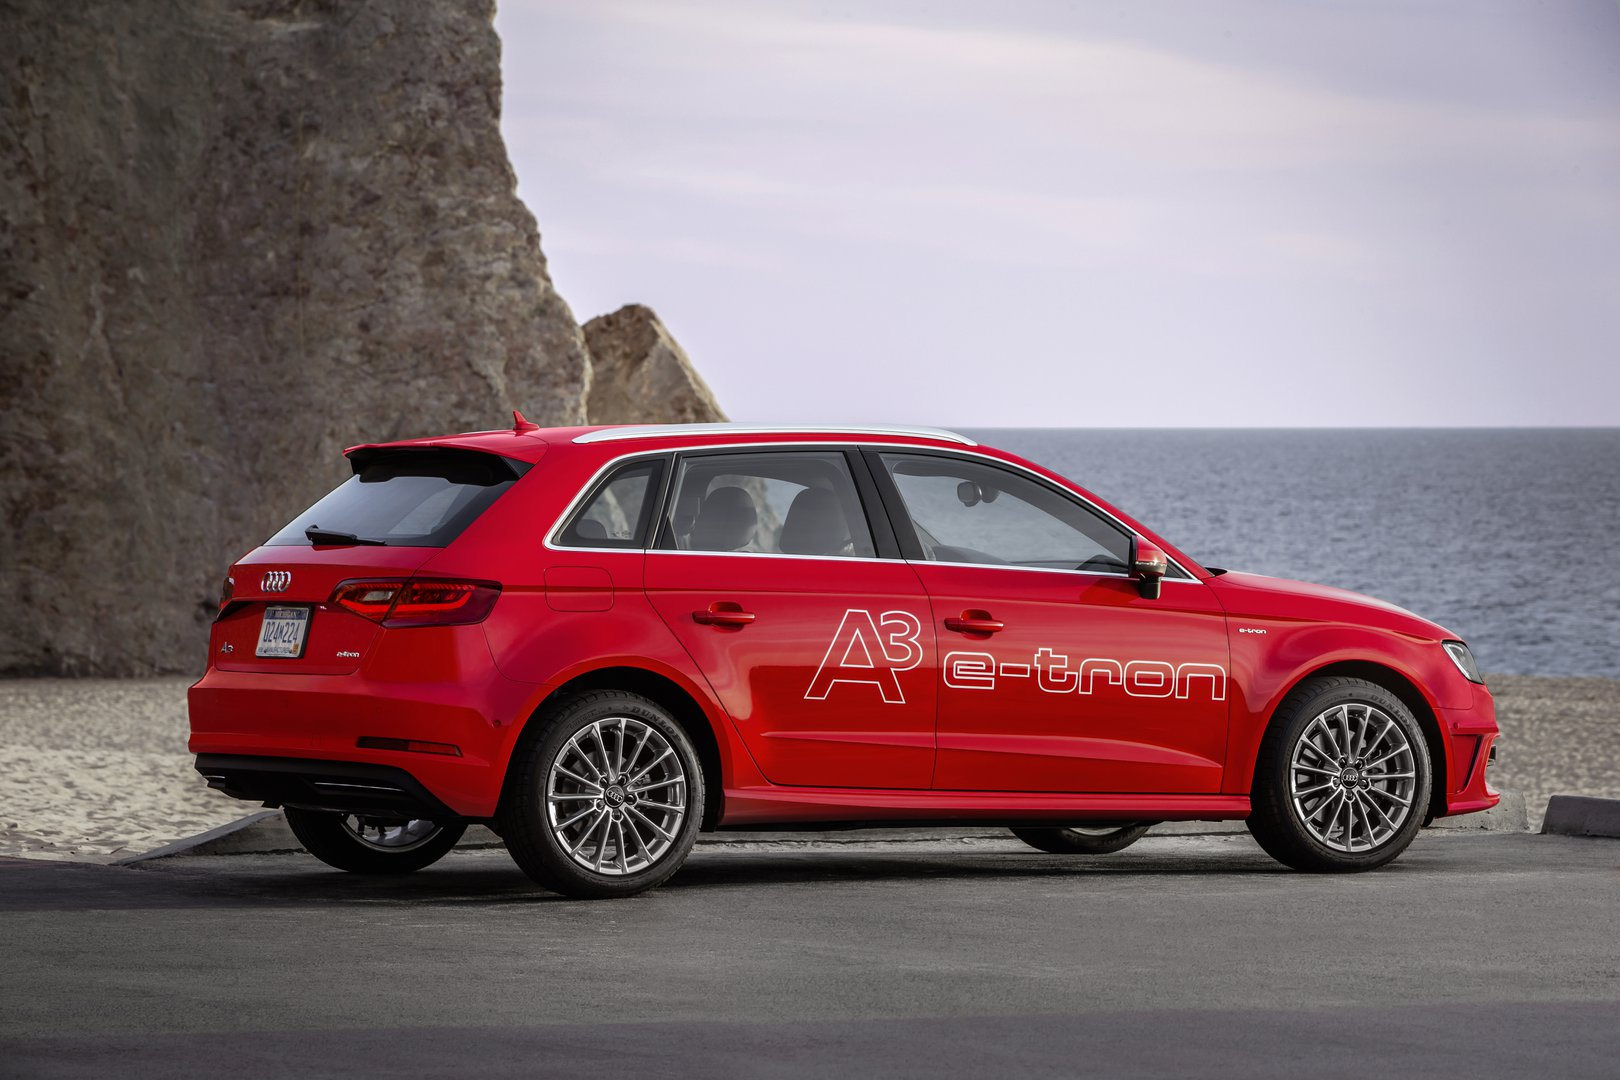 audi a3 sportback e tron ev catalogue plugin. Black Bedroom Furniture Sets. Home Design Ideas